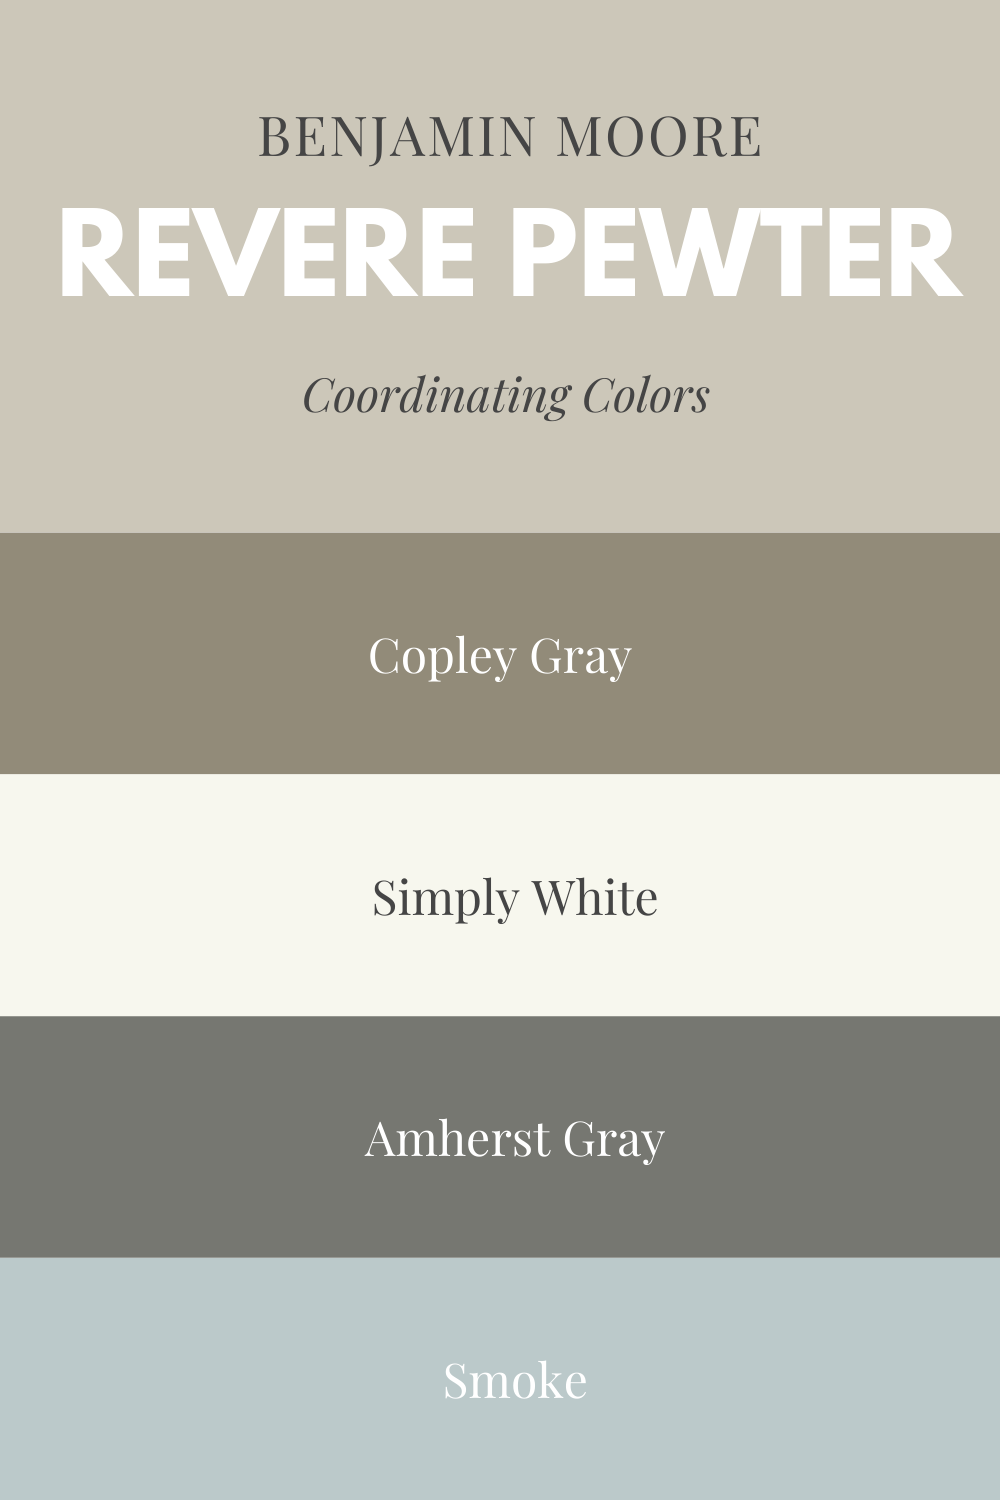 Coordinating colors with Revere Pewter